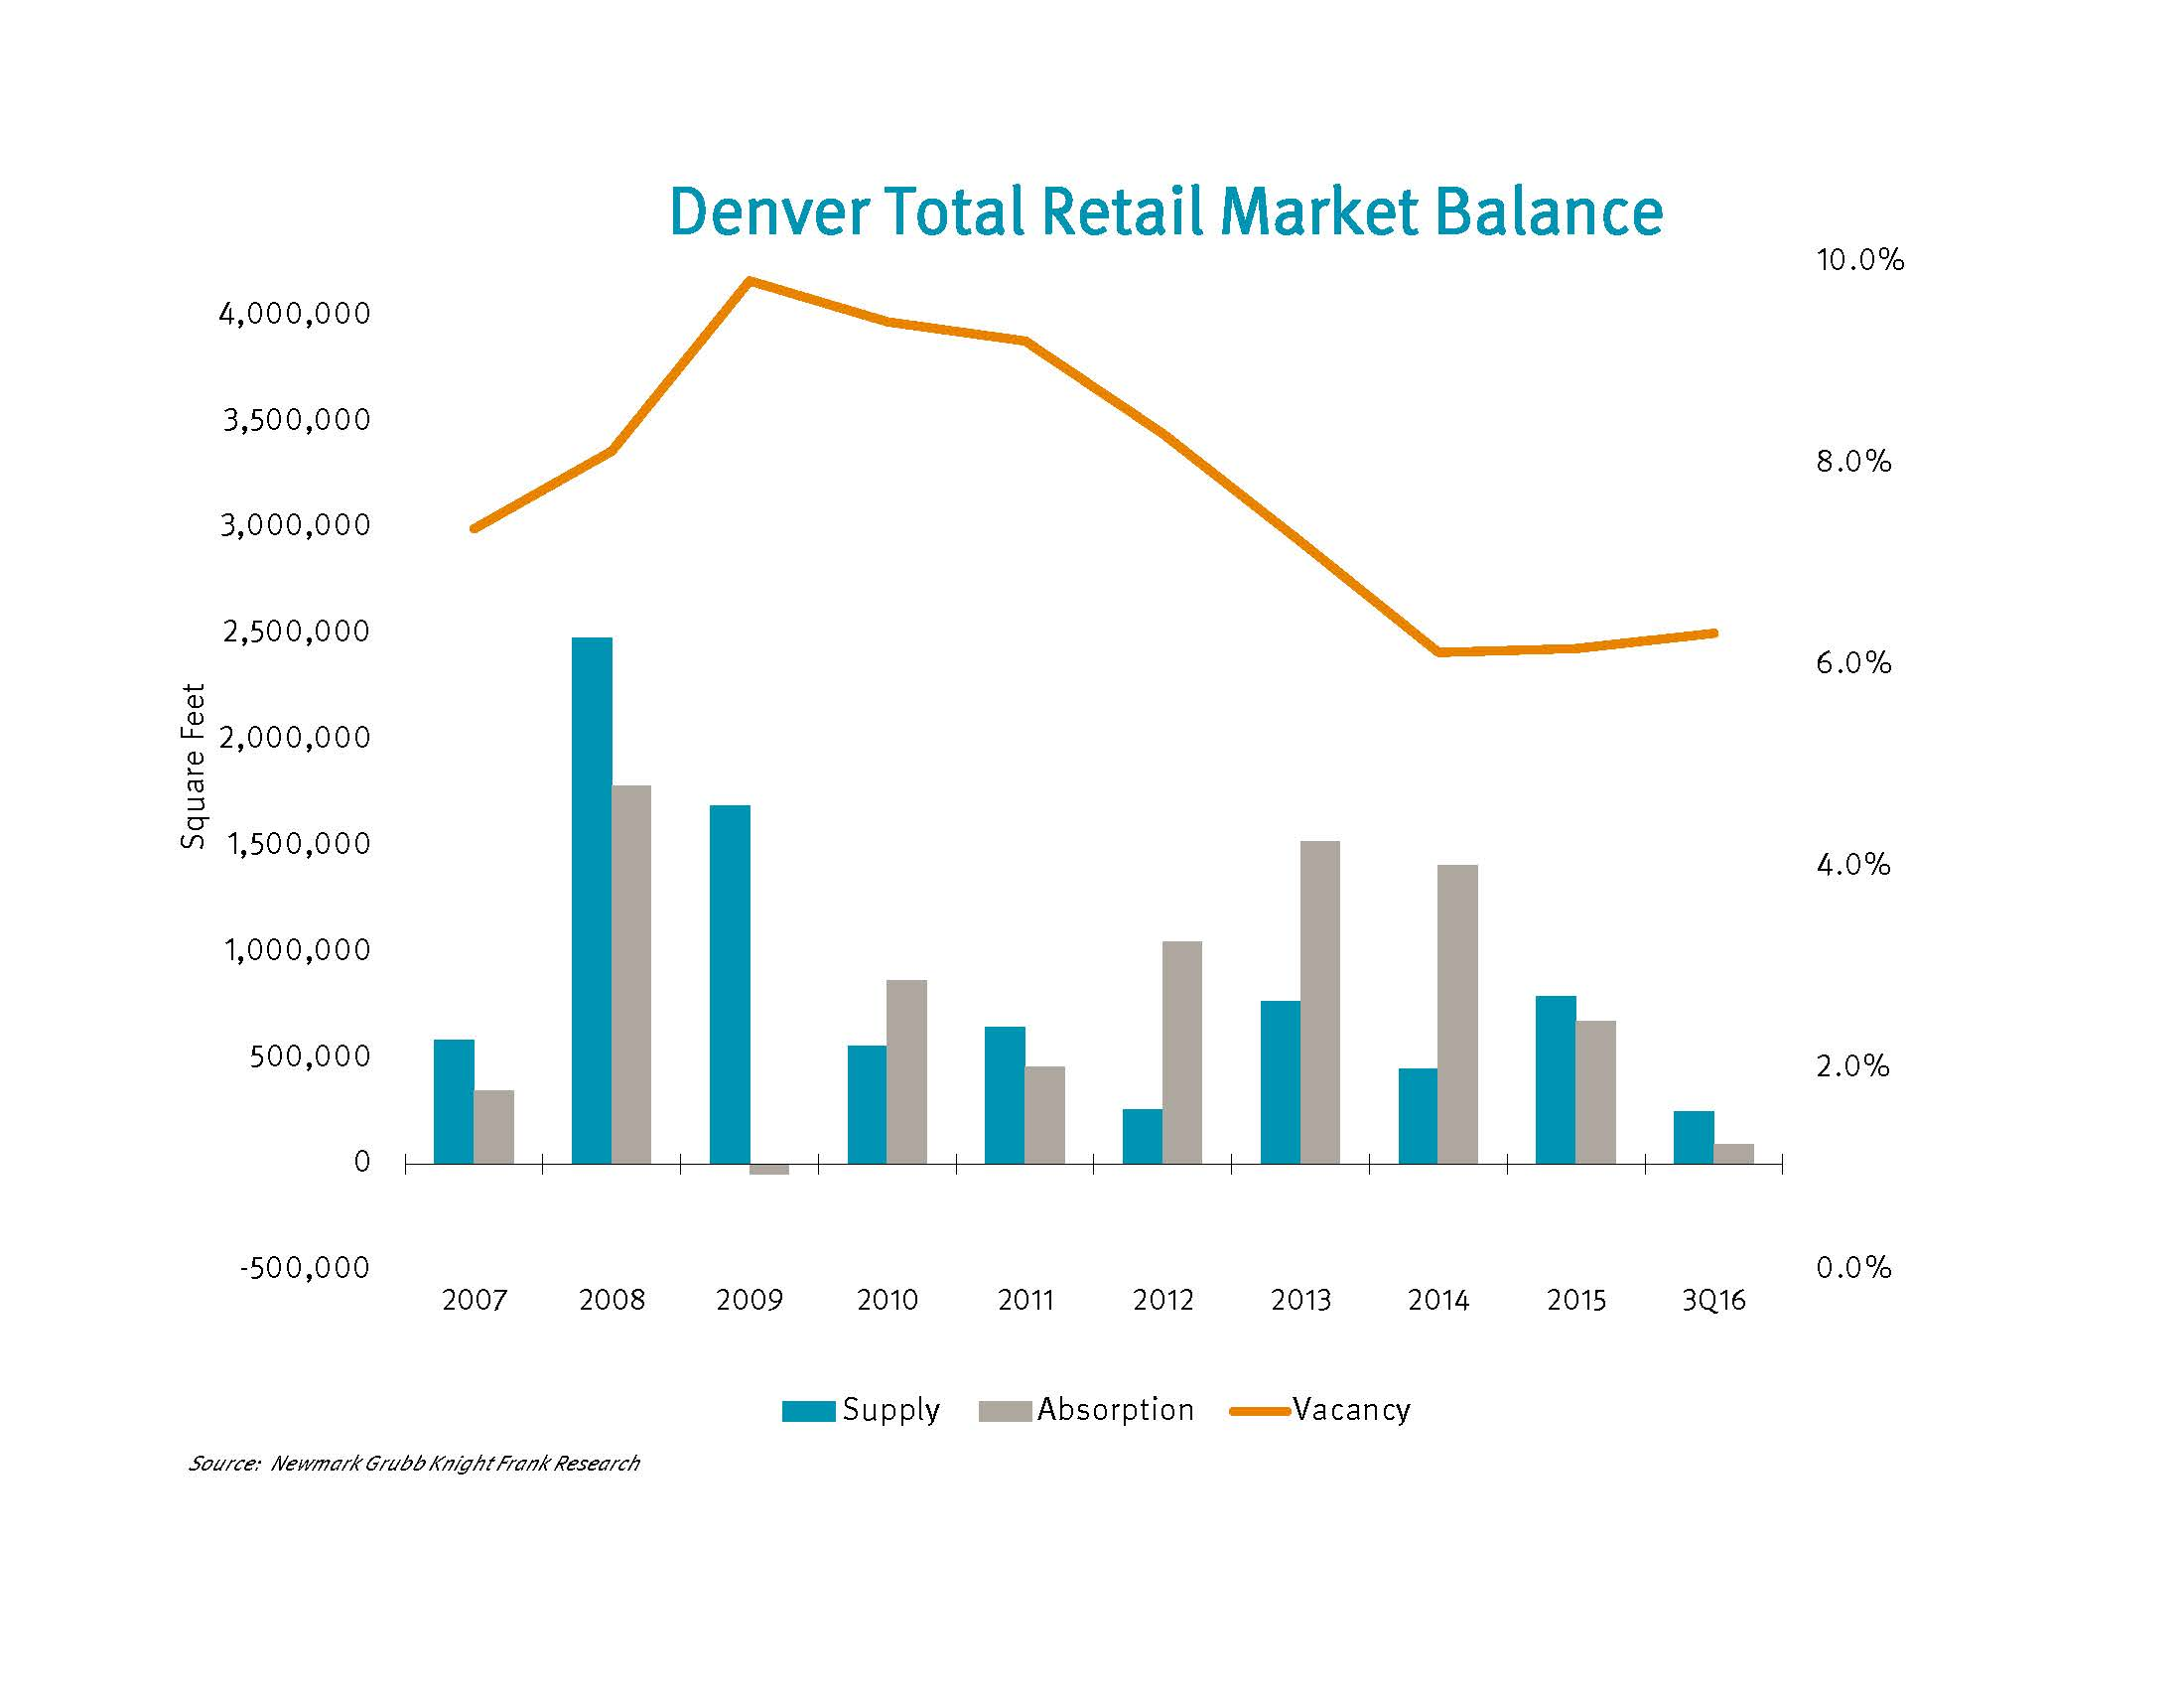 Denver total retail market balance